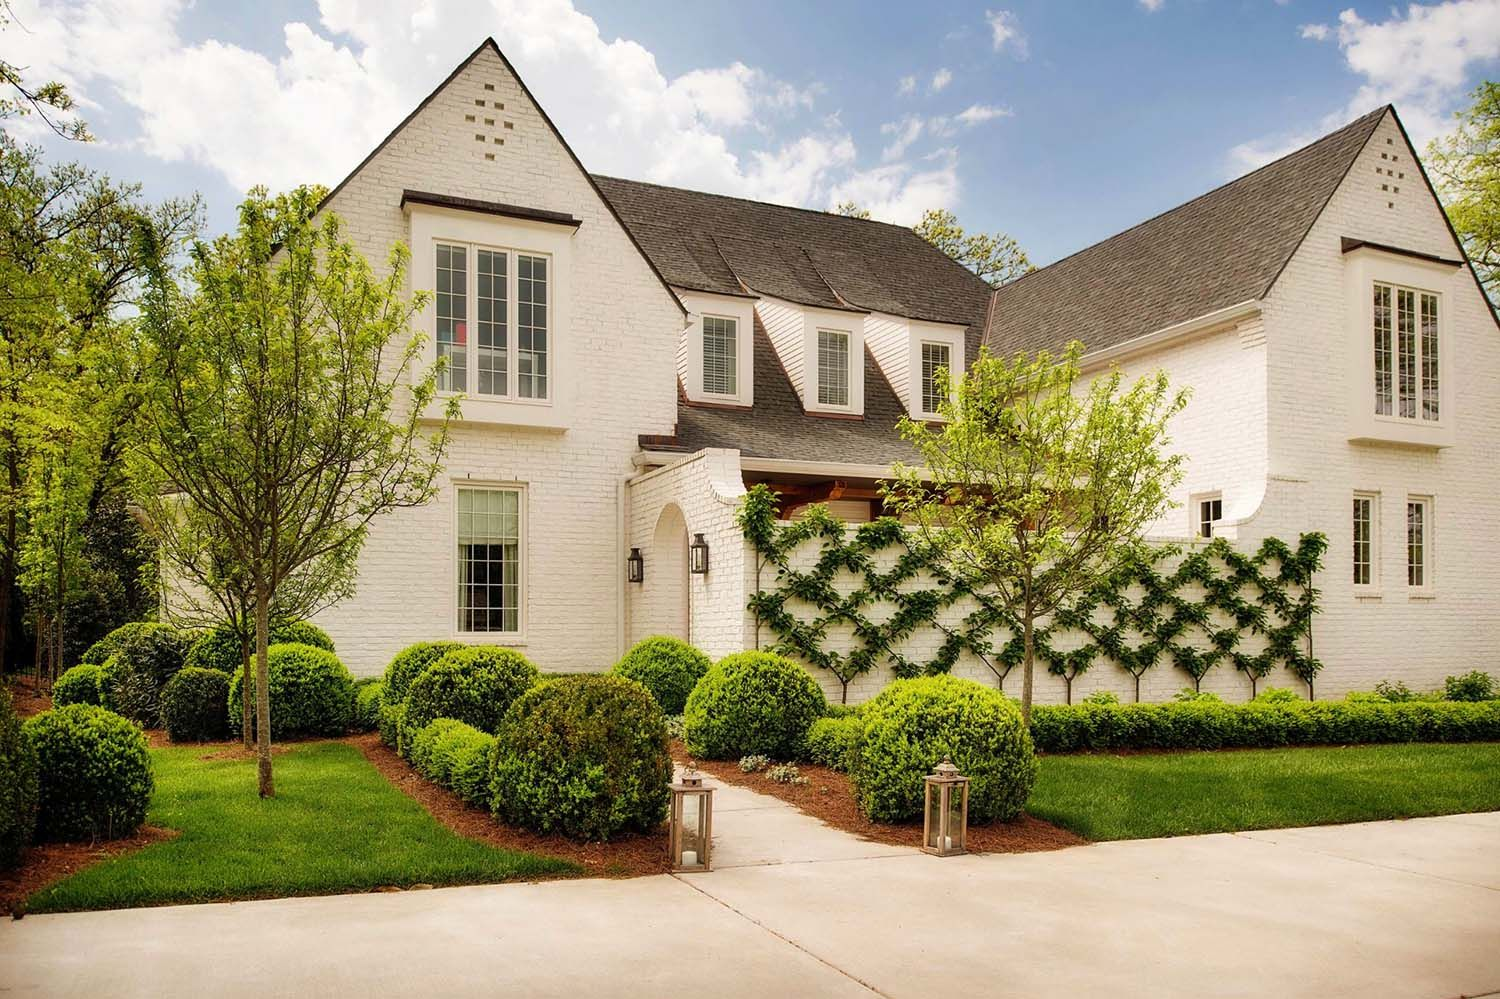 Charming english country house in nashville with a modern twist